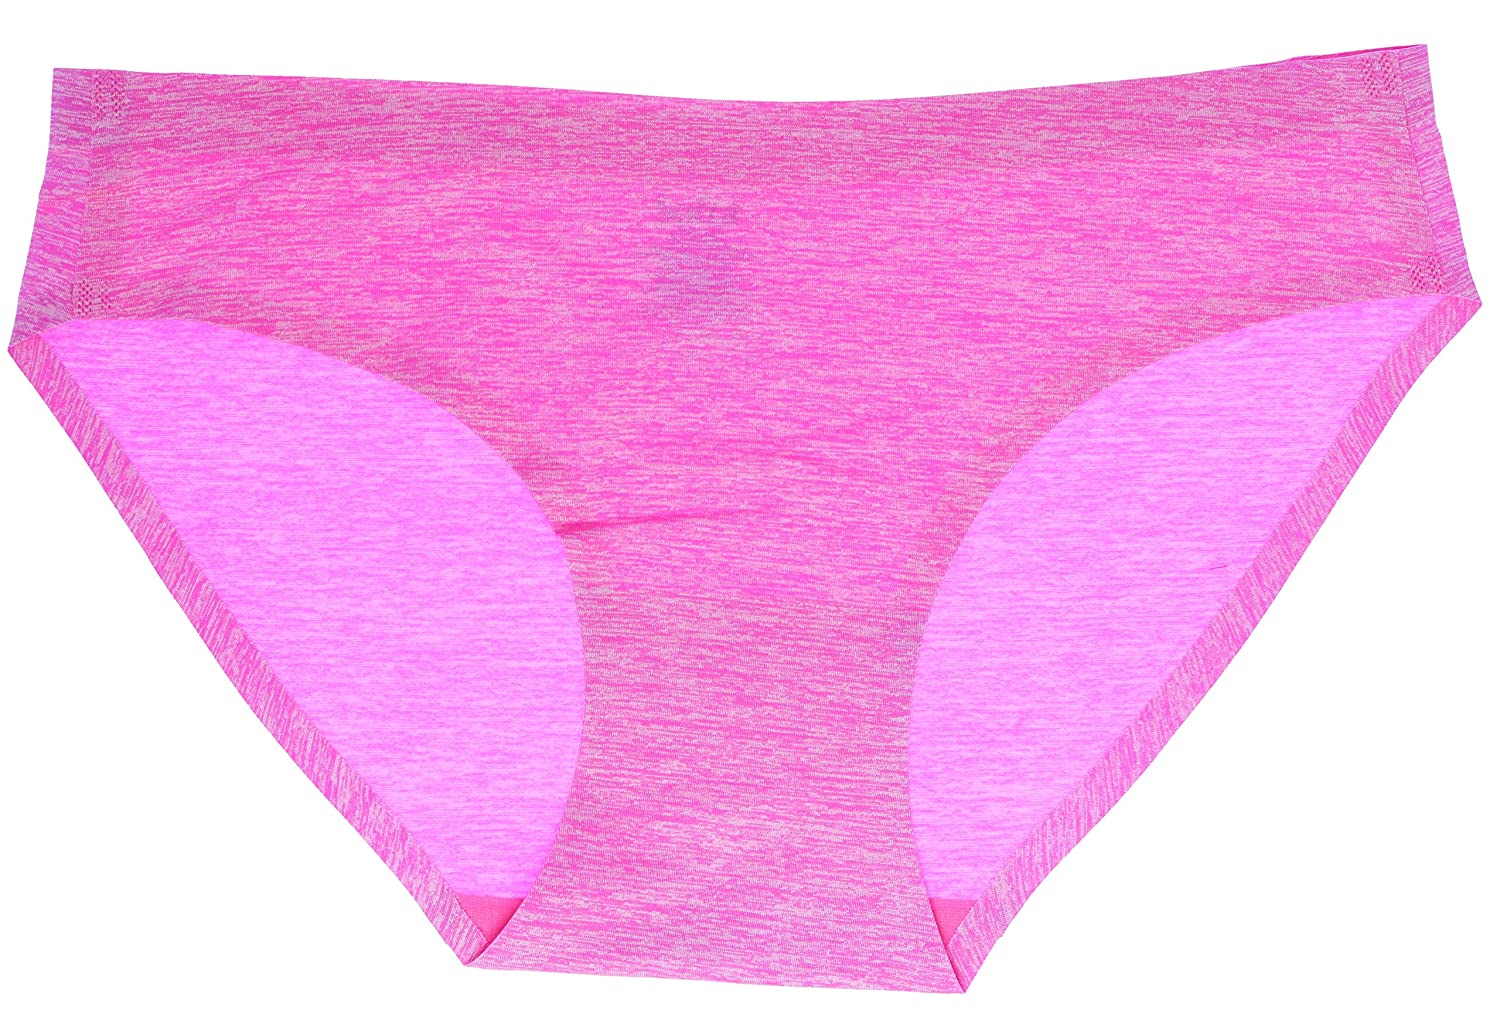 3 Pair Sofra Womens Seamless Heathered Full Bikini Underwear Panties